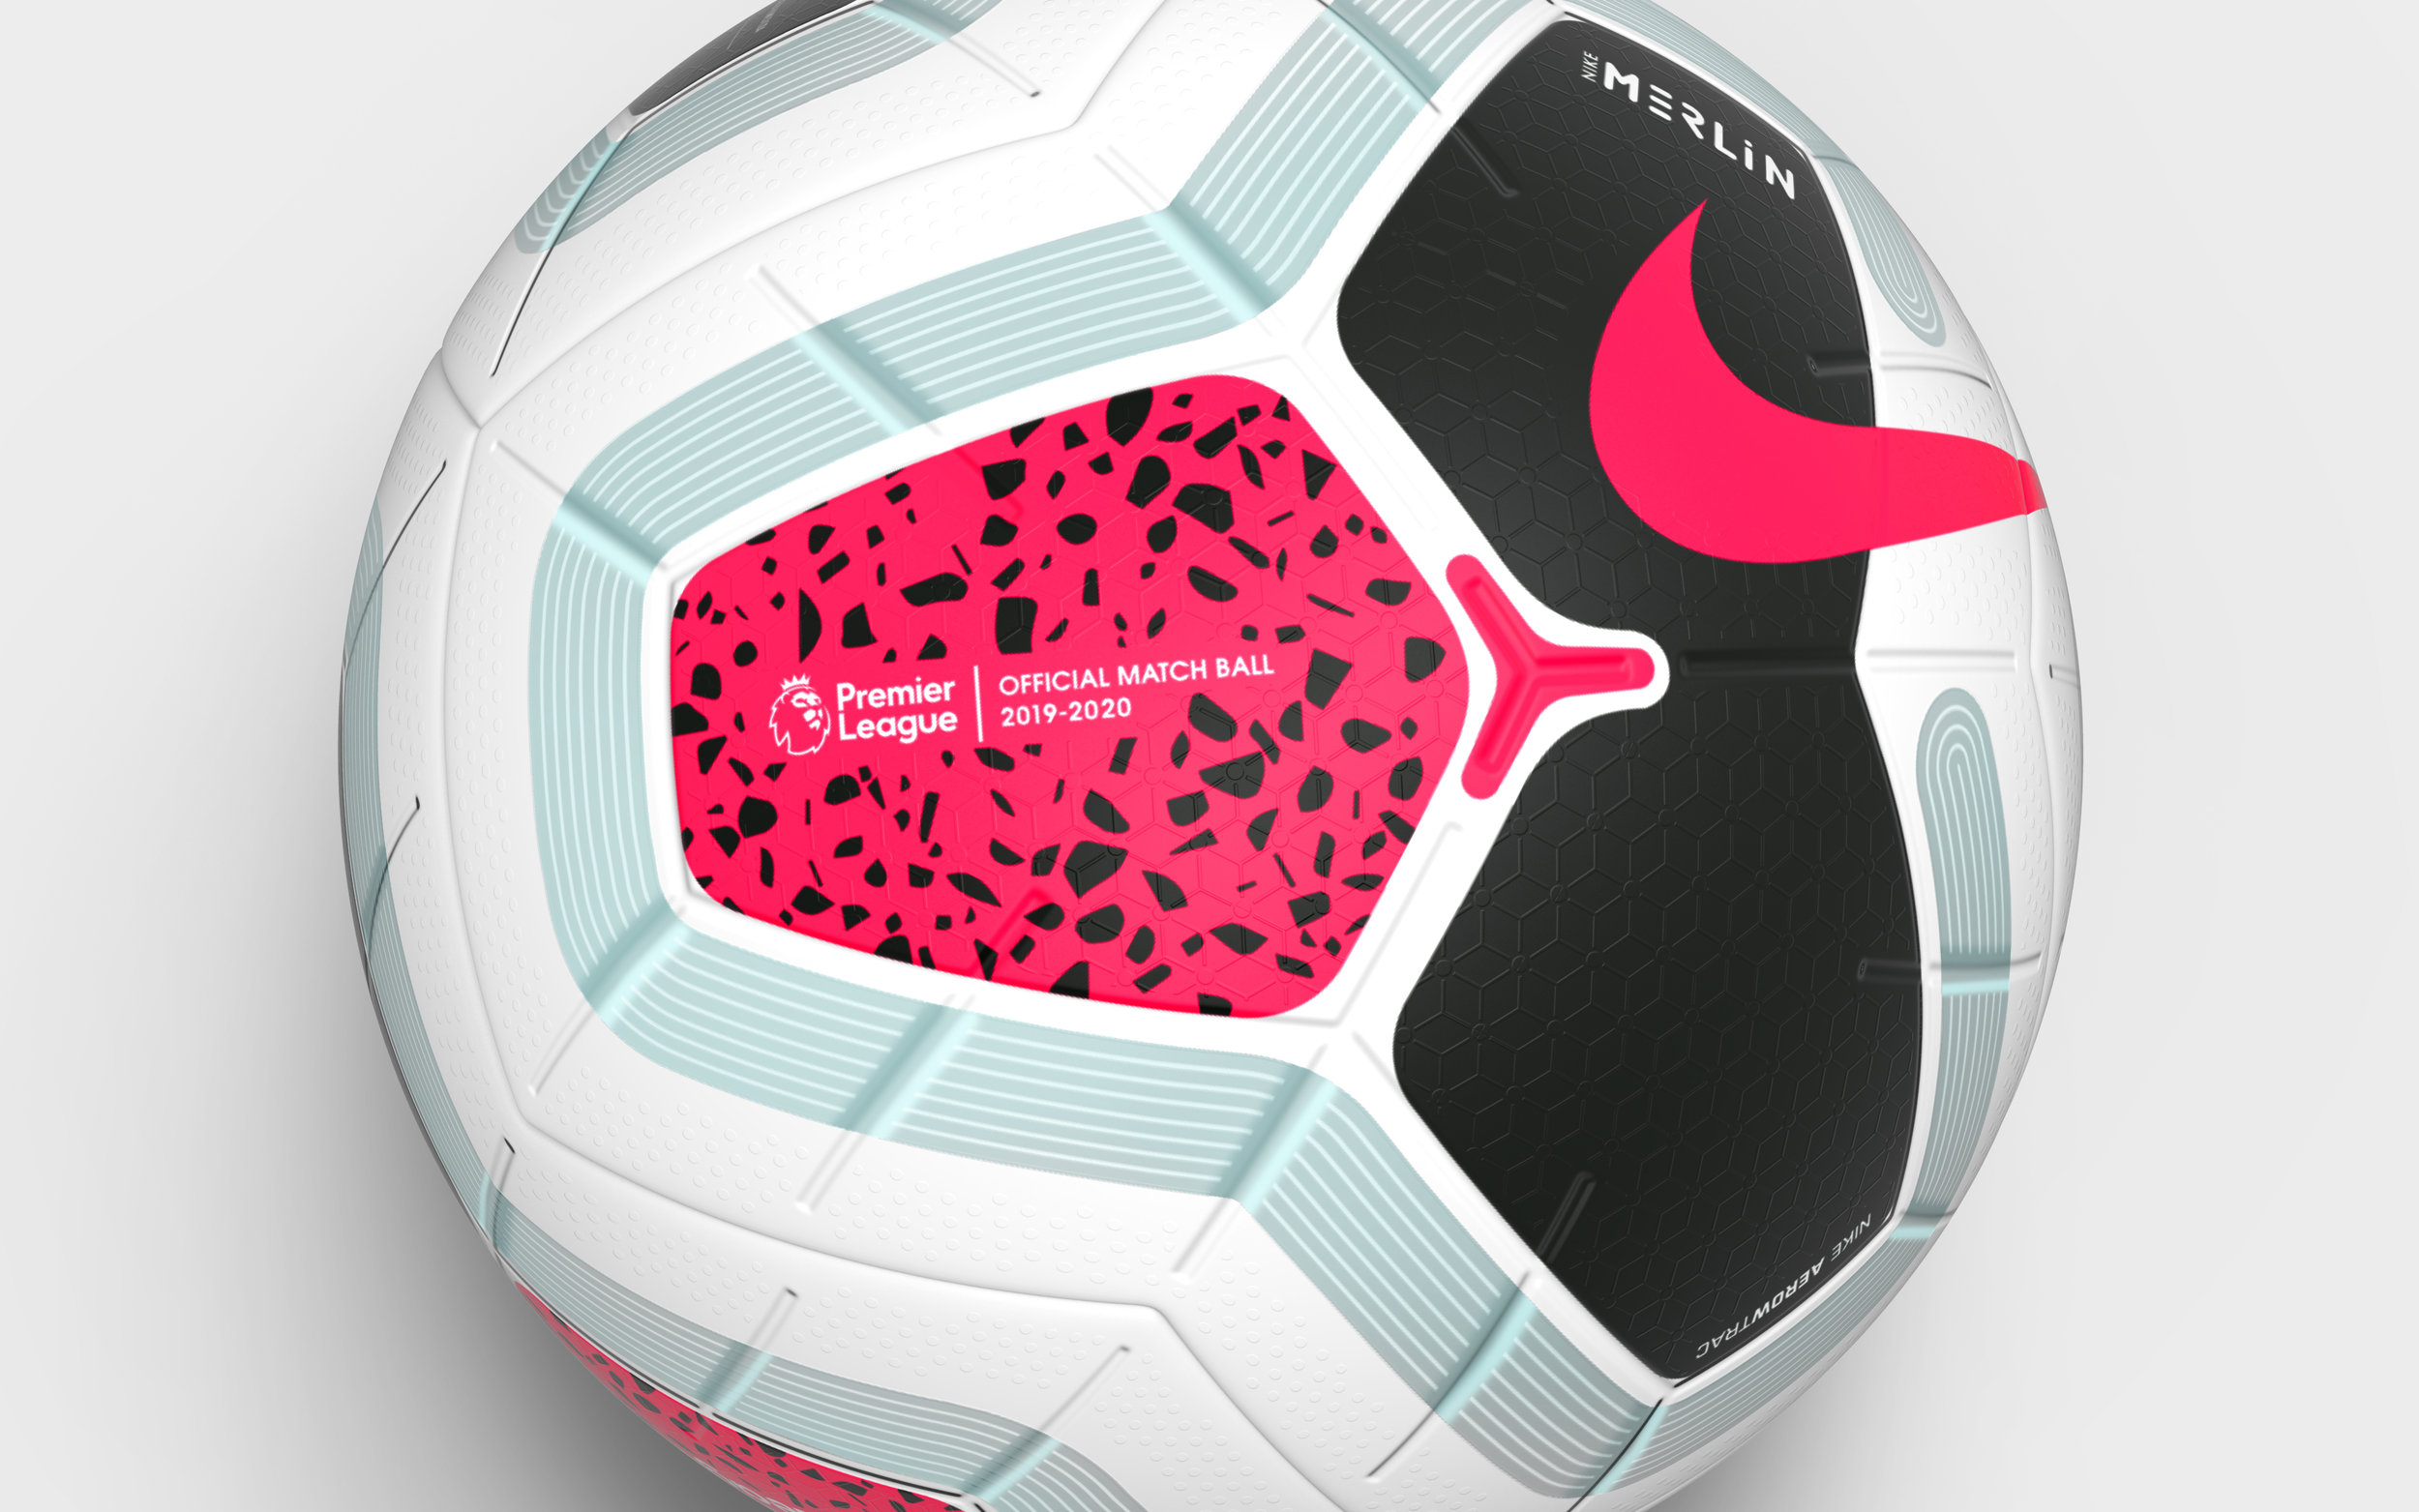 FA19_PL_Merlin_FA19Graphic_FinalViews_officialmatchball.jpg